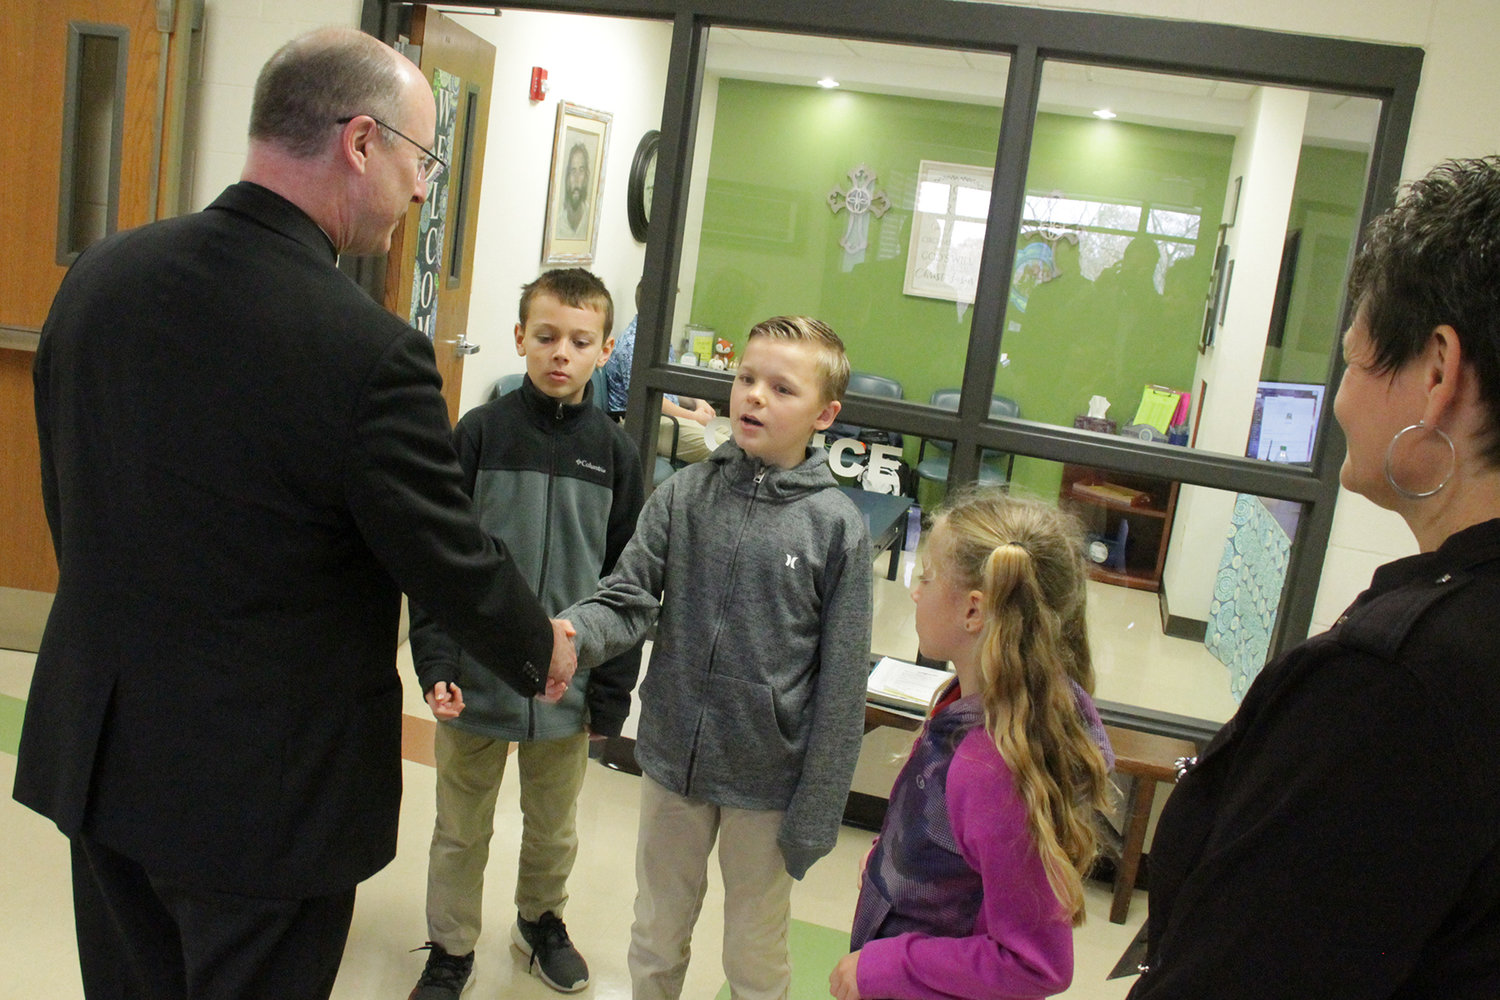 Third-graders at St. Martin School in St. Martins say goodbye to Bishop McKnight and thank him for visiting.